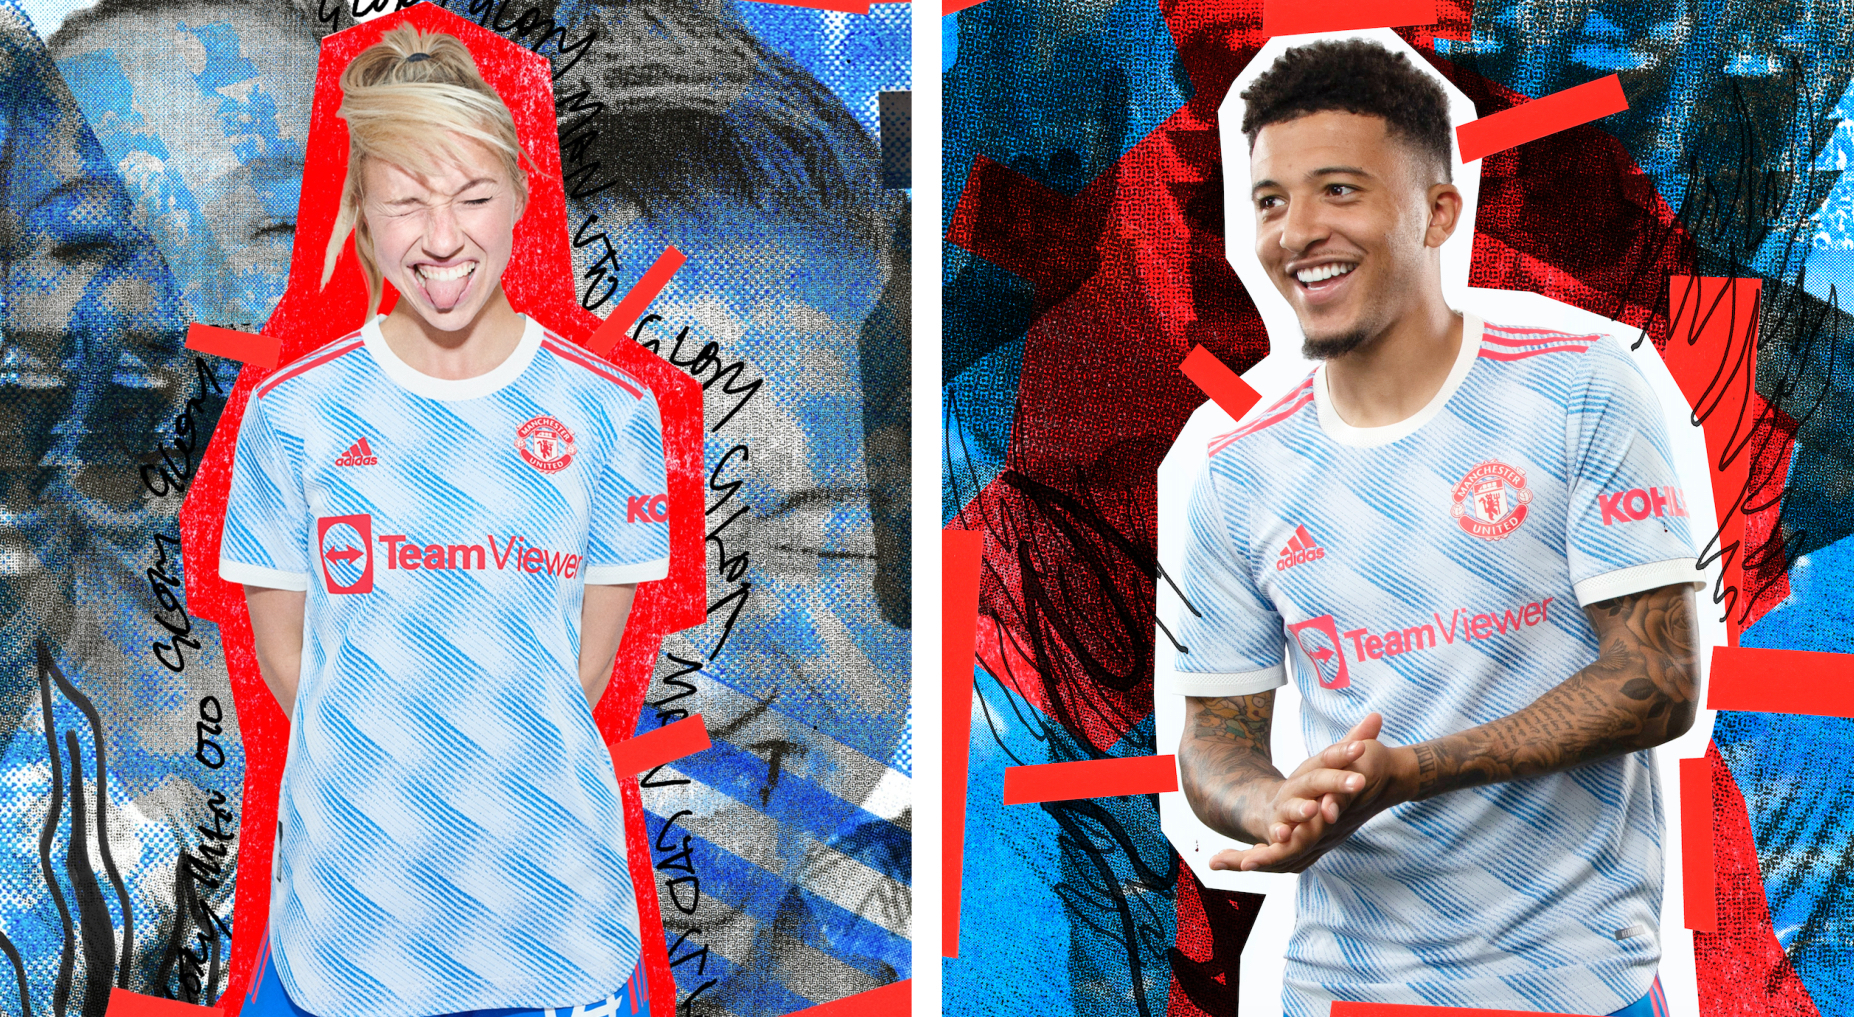 adidas and Manchester United Drop a New Away Kit Inspired by the Club's Iconic 'Snowflake' Shirt from 92